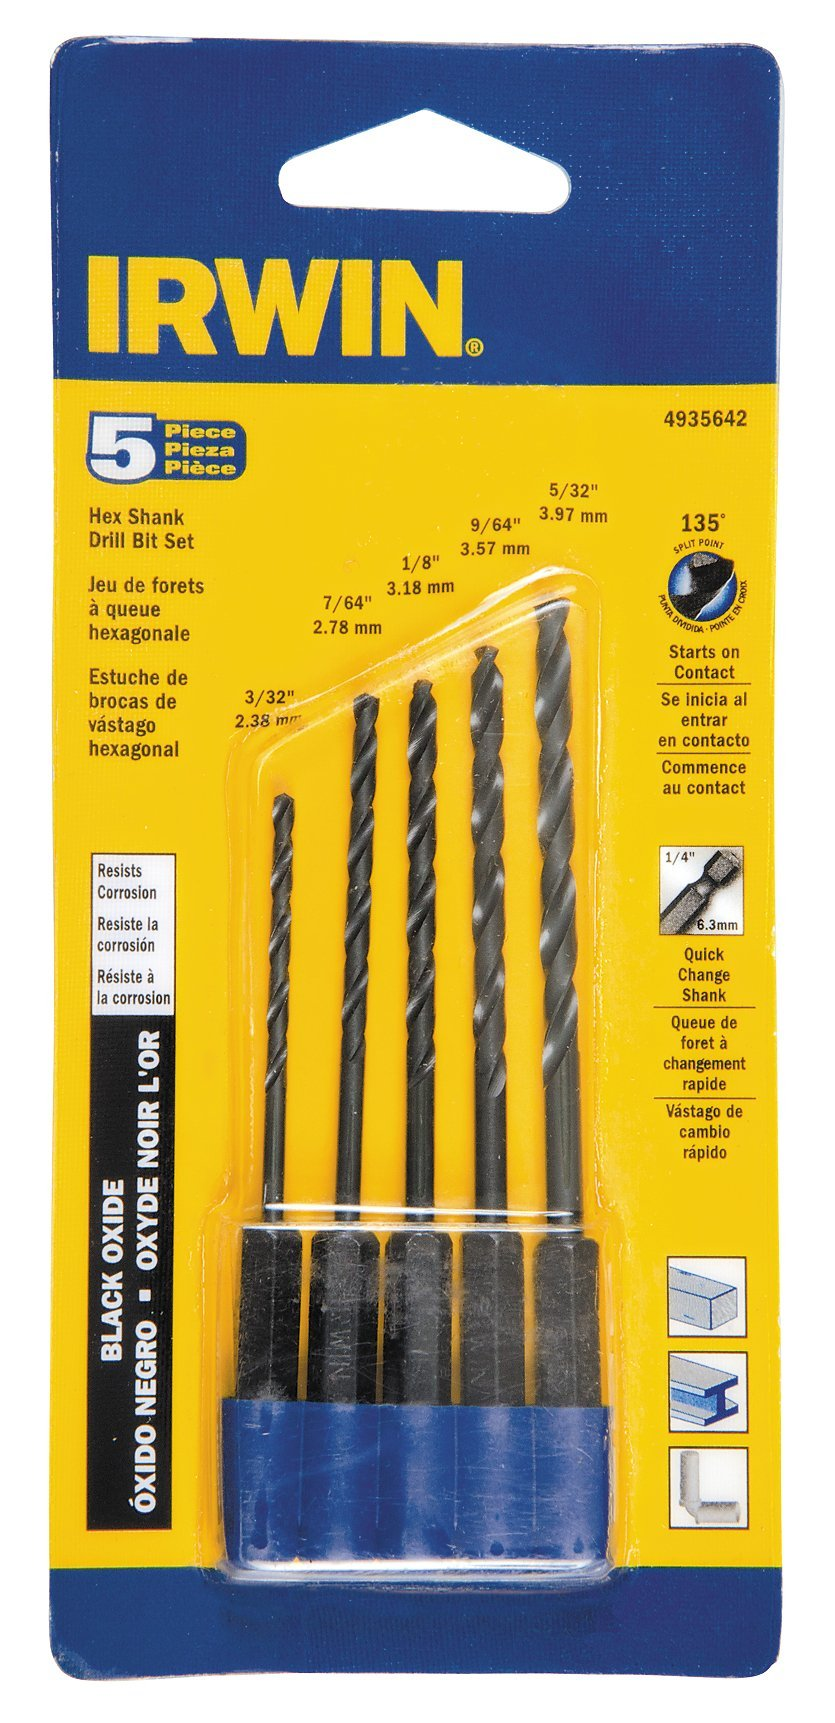 Irwin 4935642 Black Oxide Hex Shank Drill Bit Set 5 Count by American Tool Exchange (Image #1)